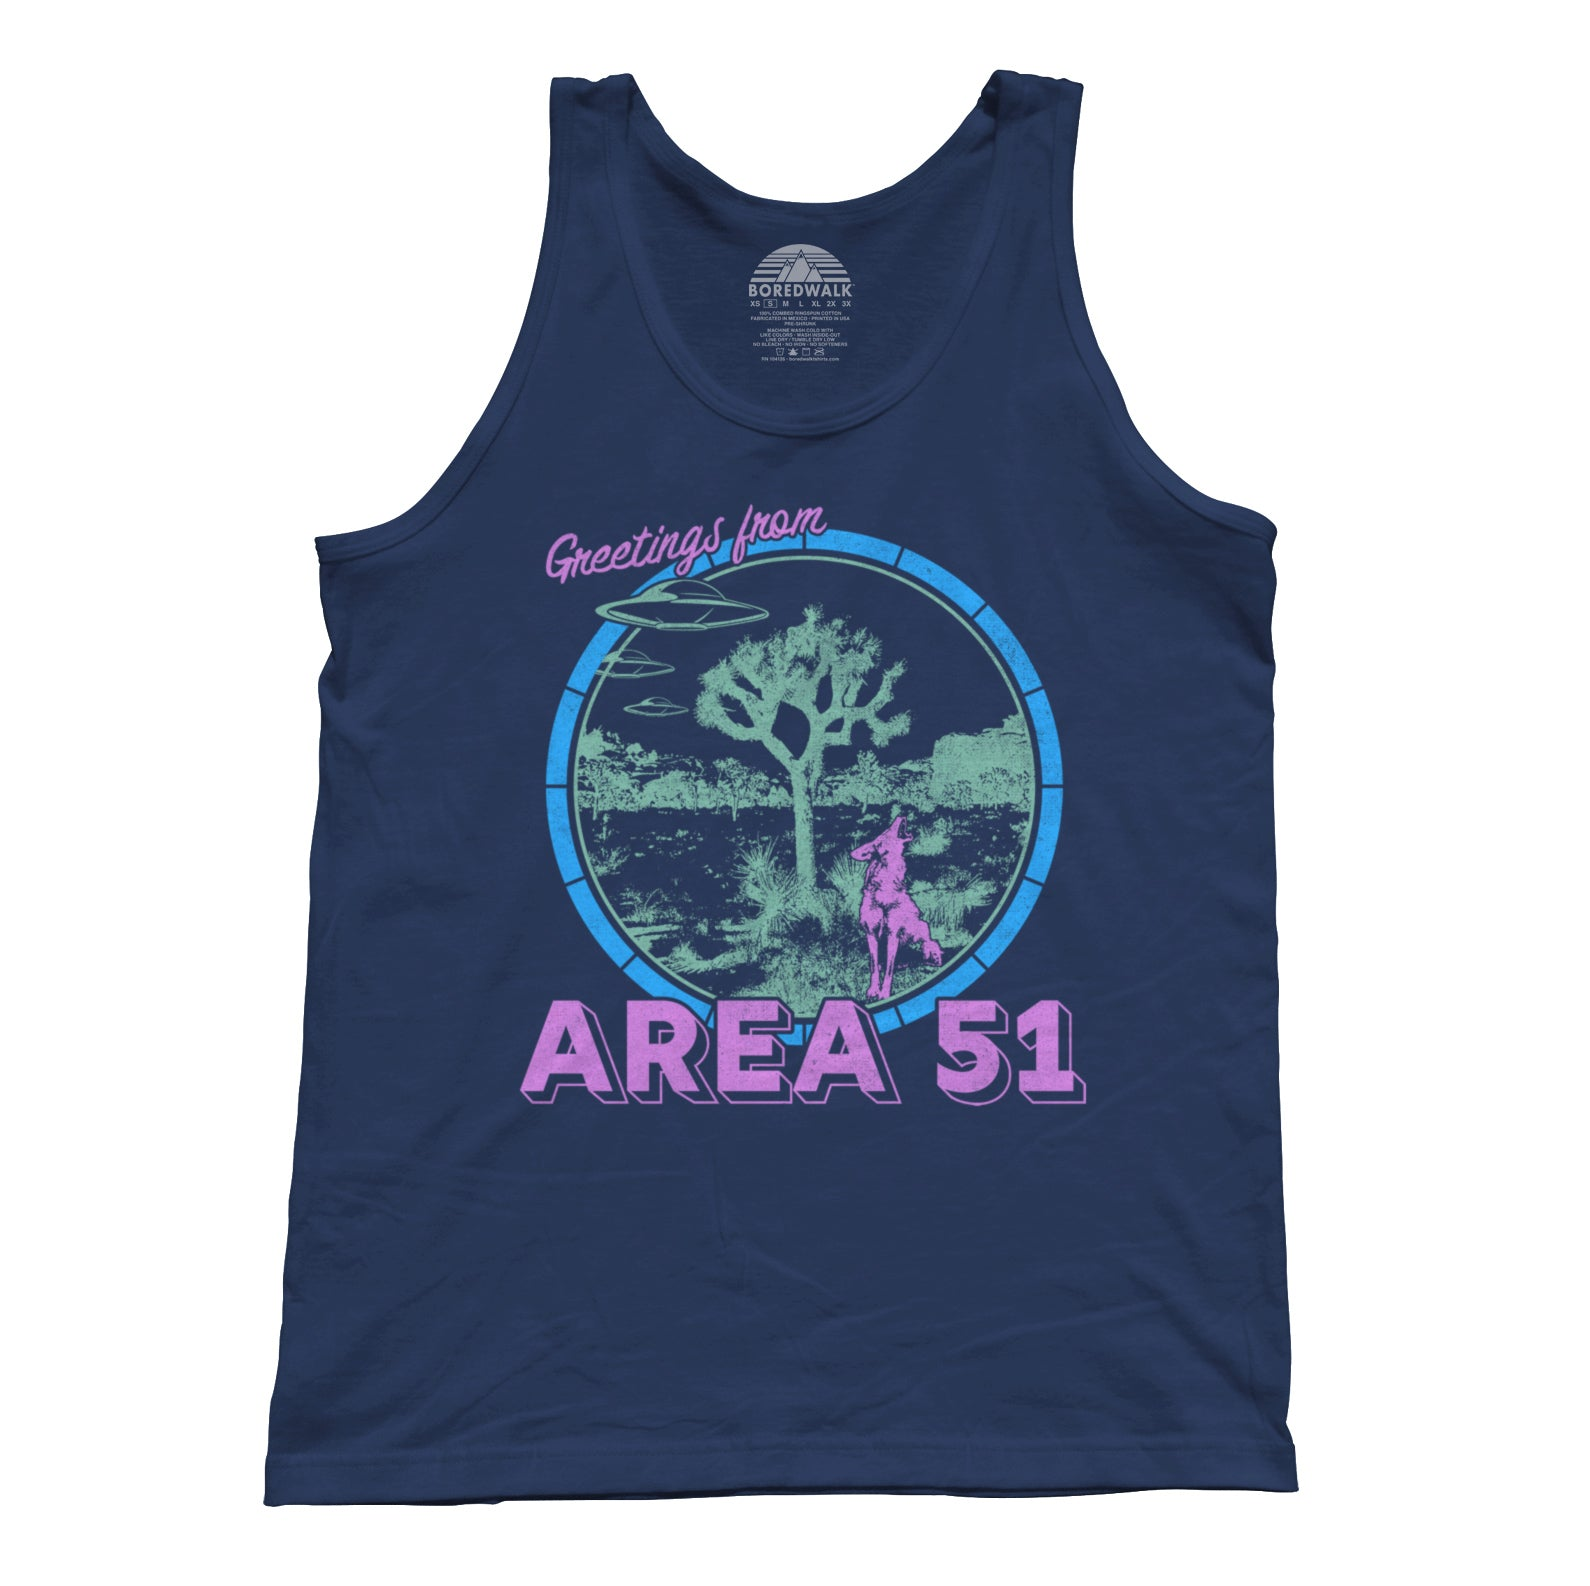 Unisex Greetings from Area 51 Tank Top